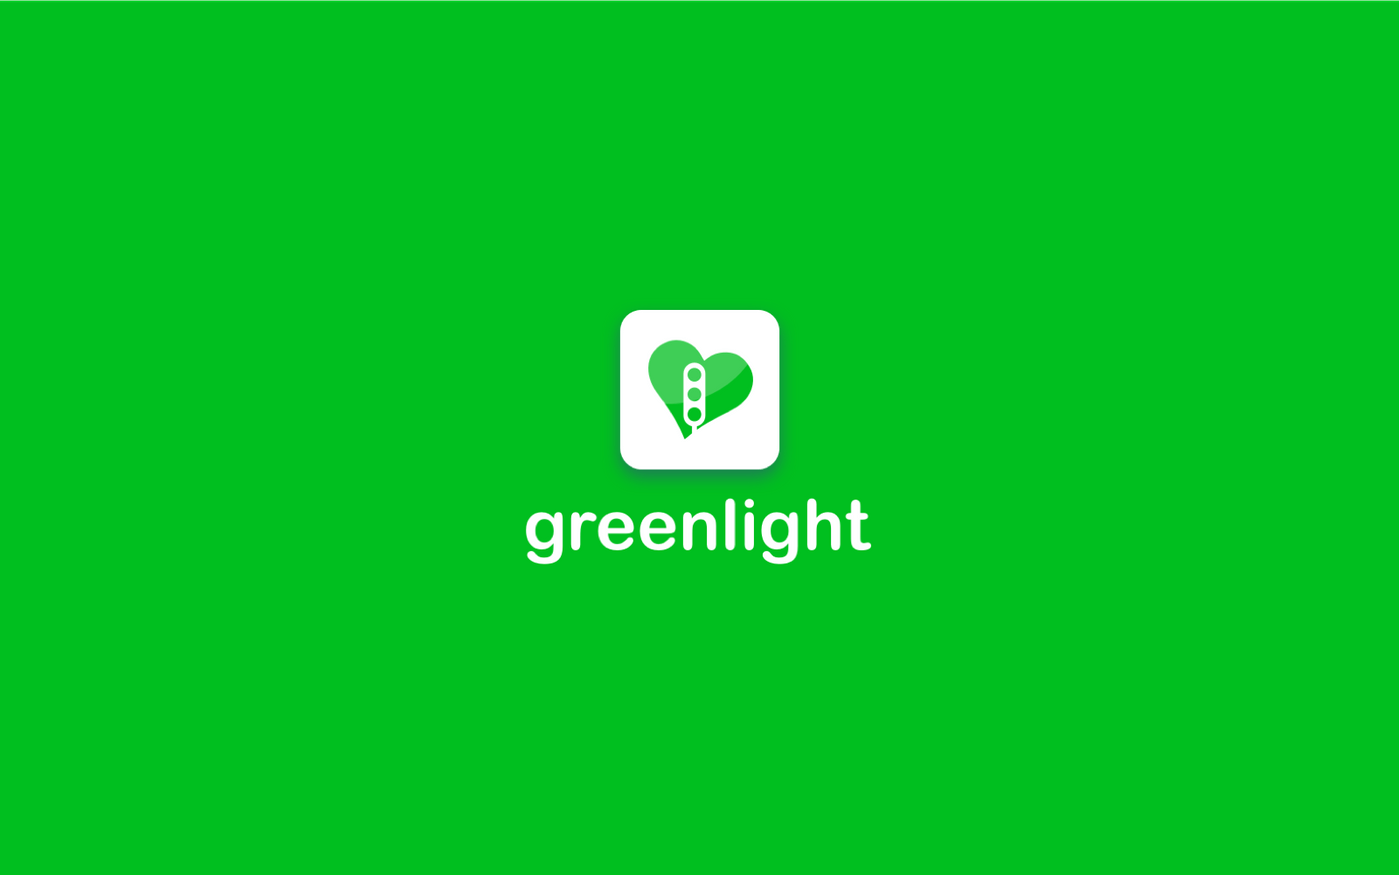 Green and white logo of GreenLight